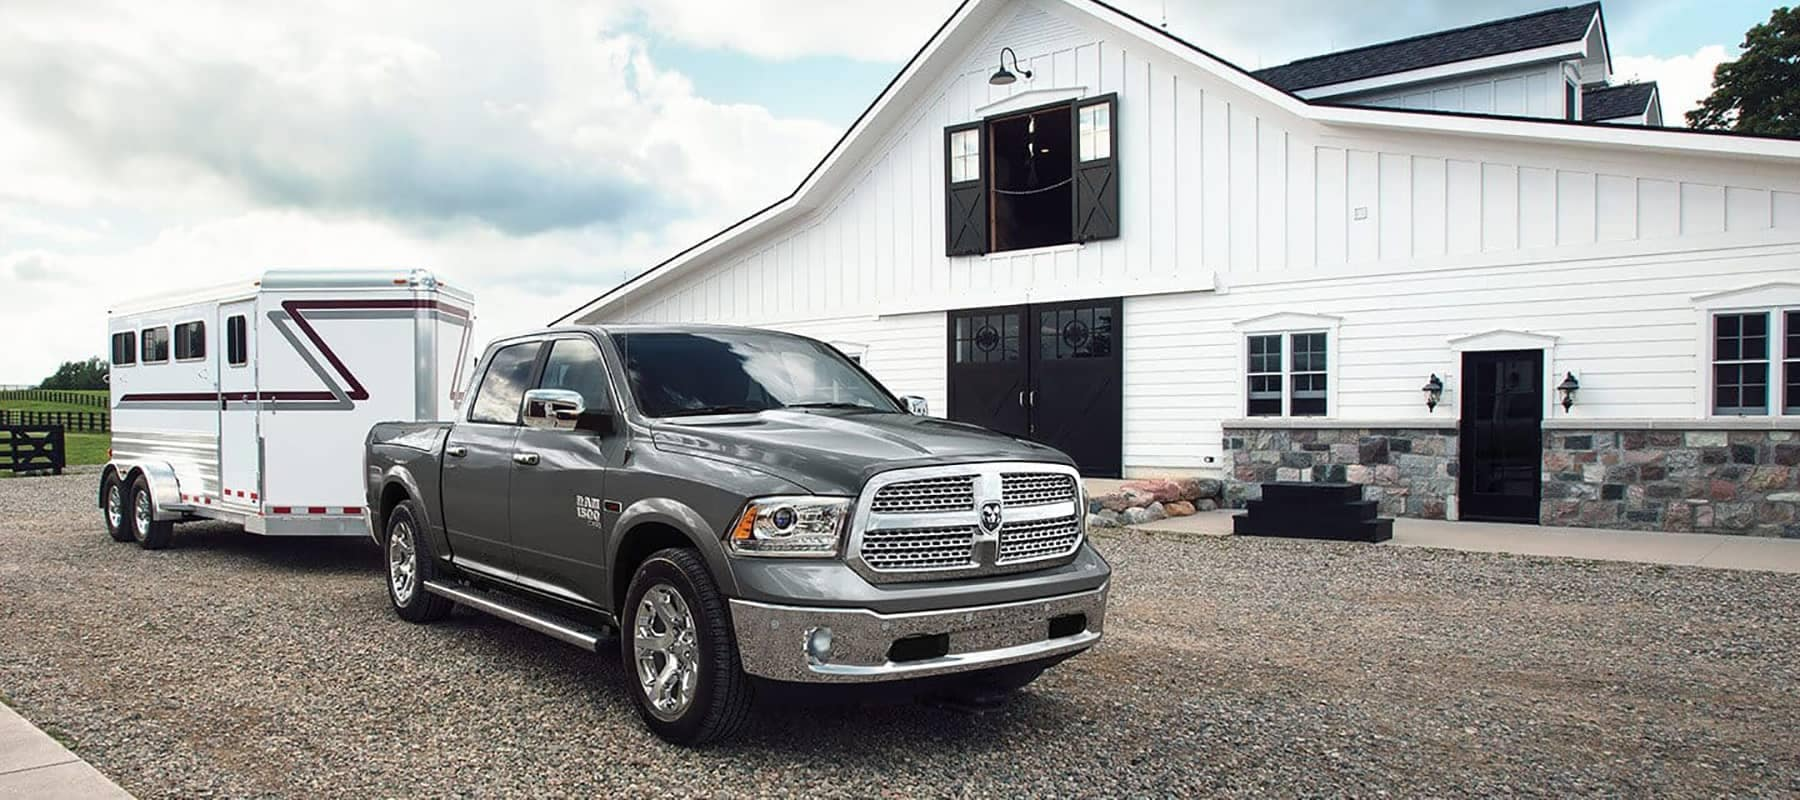 How Much Can A Ram 1500 Tow >> How Much Can Ram Trucks Tow Ram Truck Towing Capacity